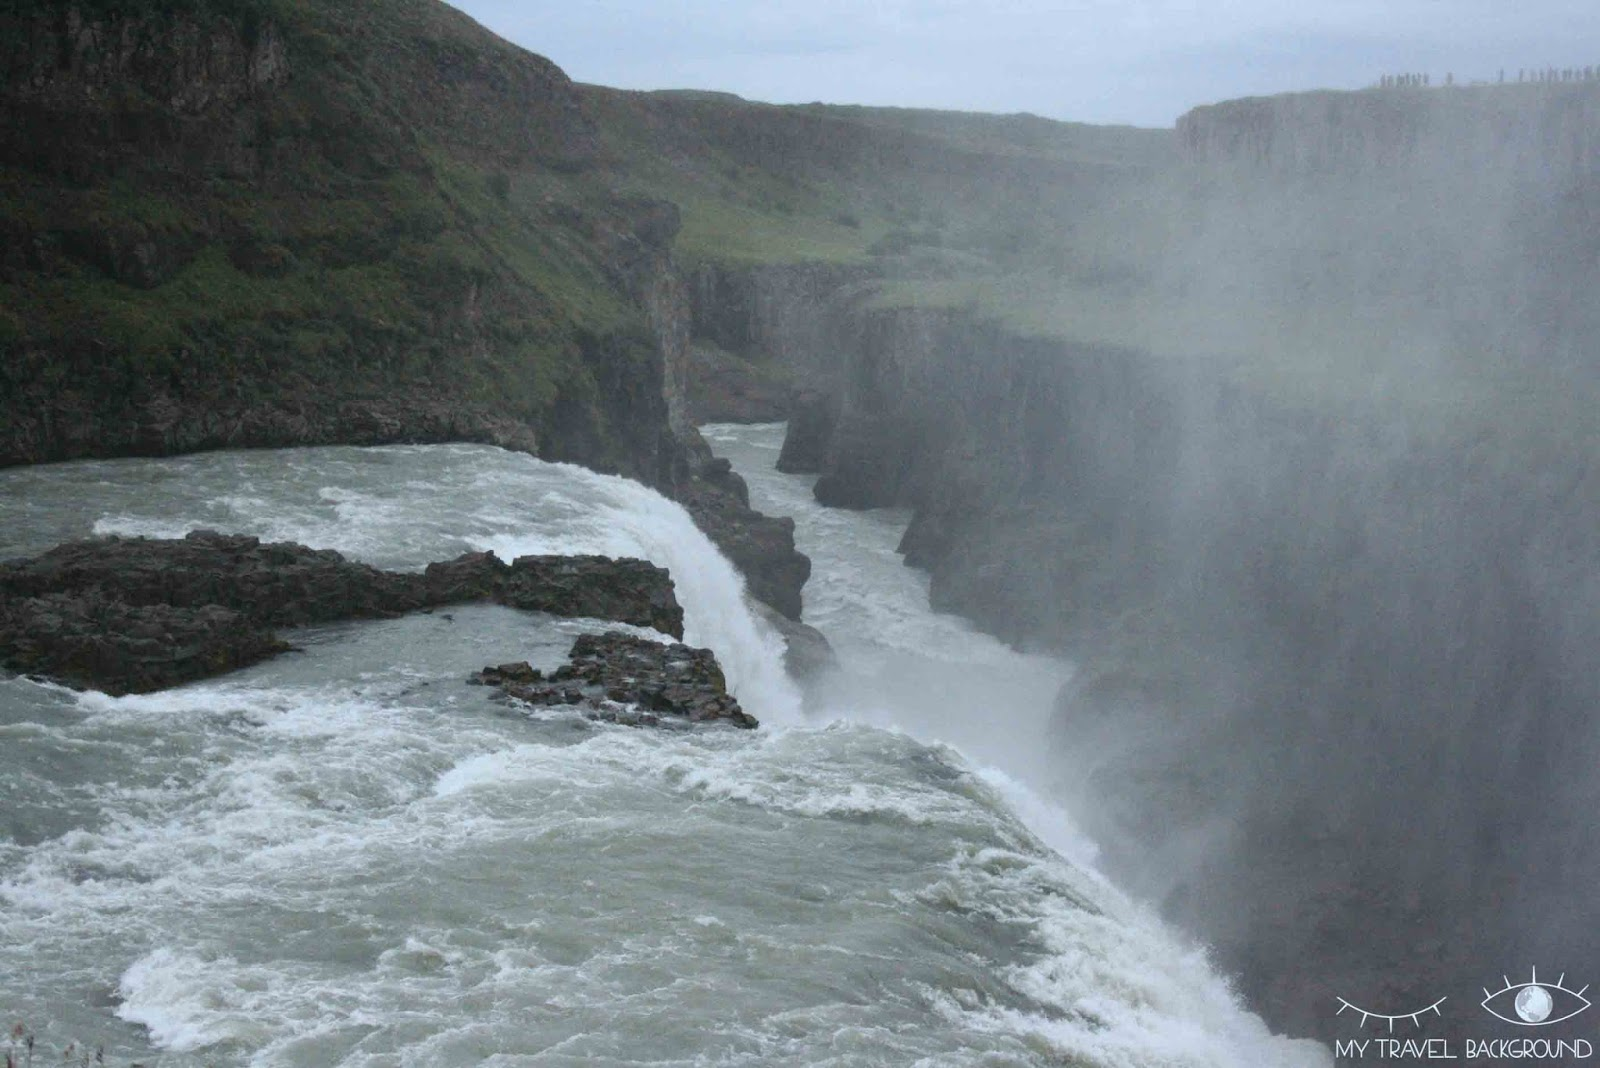 My Travel Background : visite du Cercle d'Or en Islande - Cascade de Gullfoss